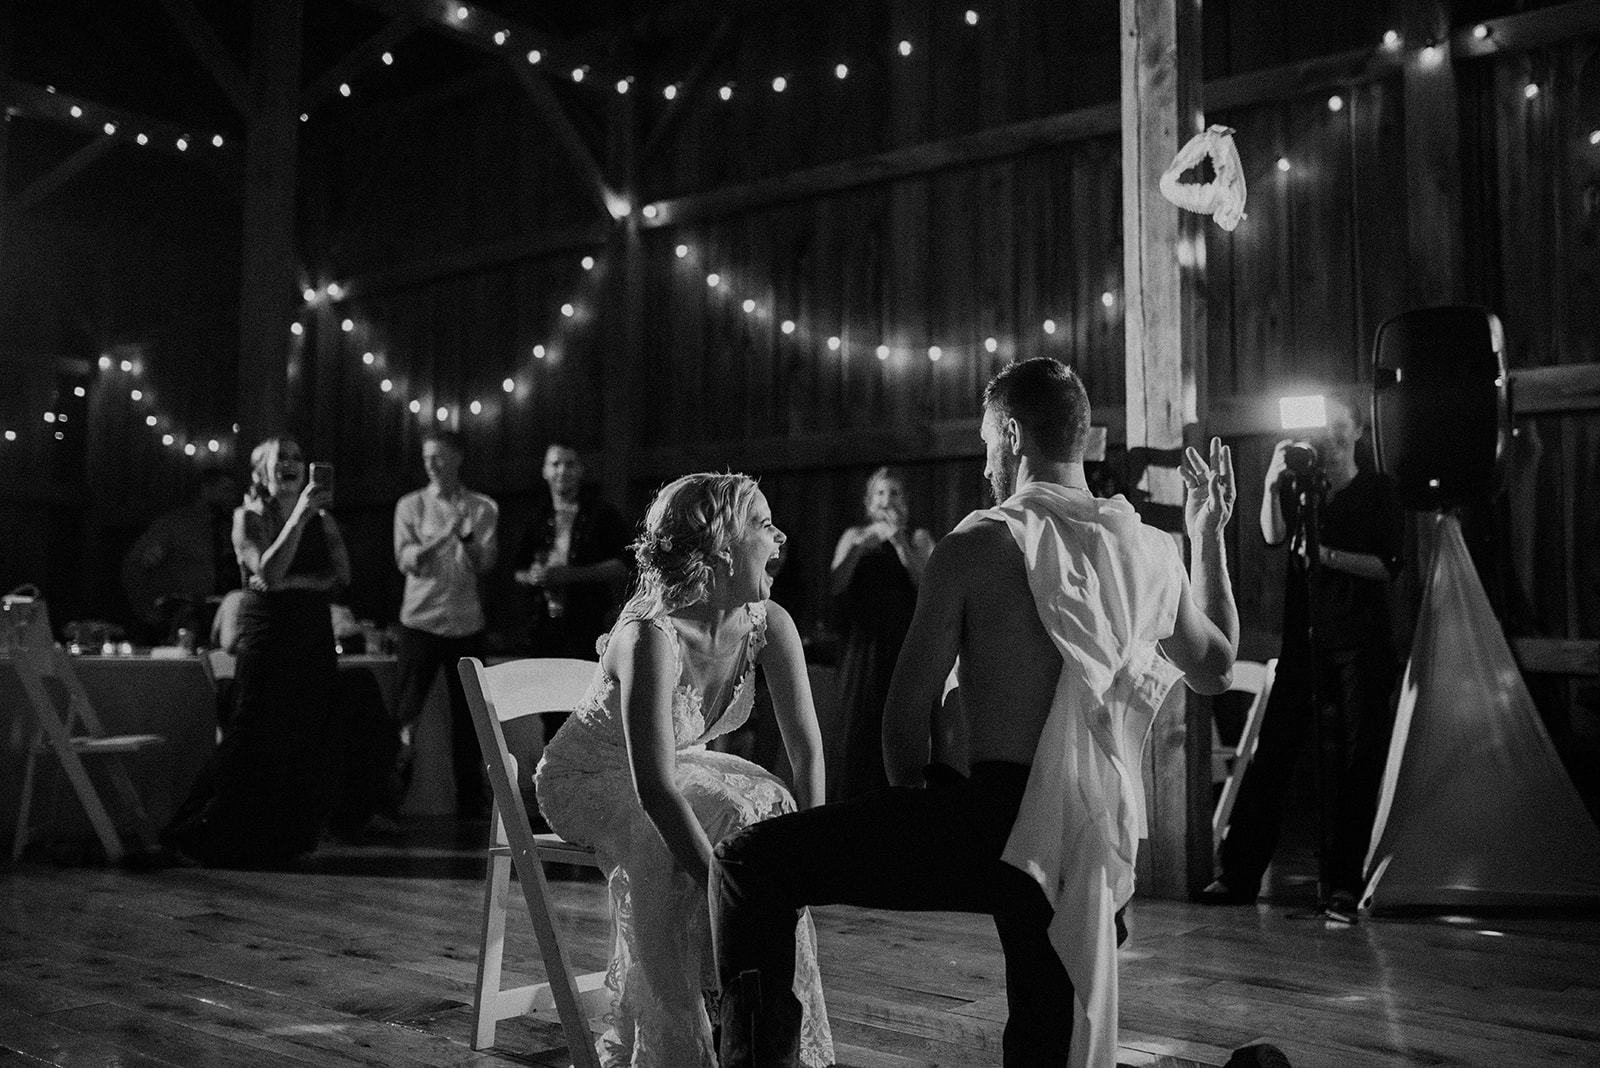 overthevineswisconsinwedding_1542.jpg